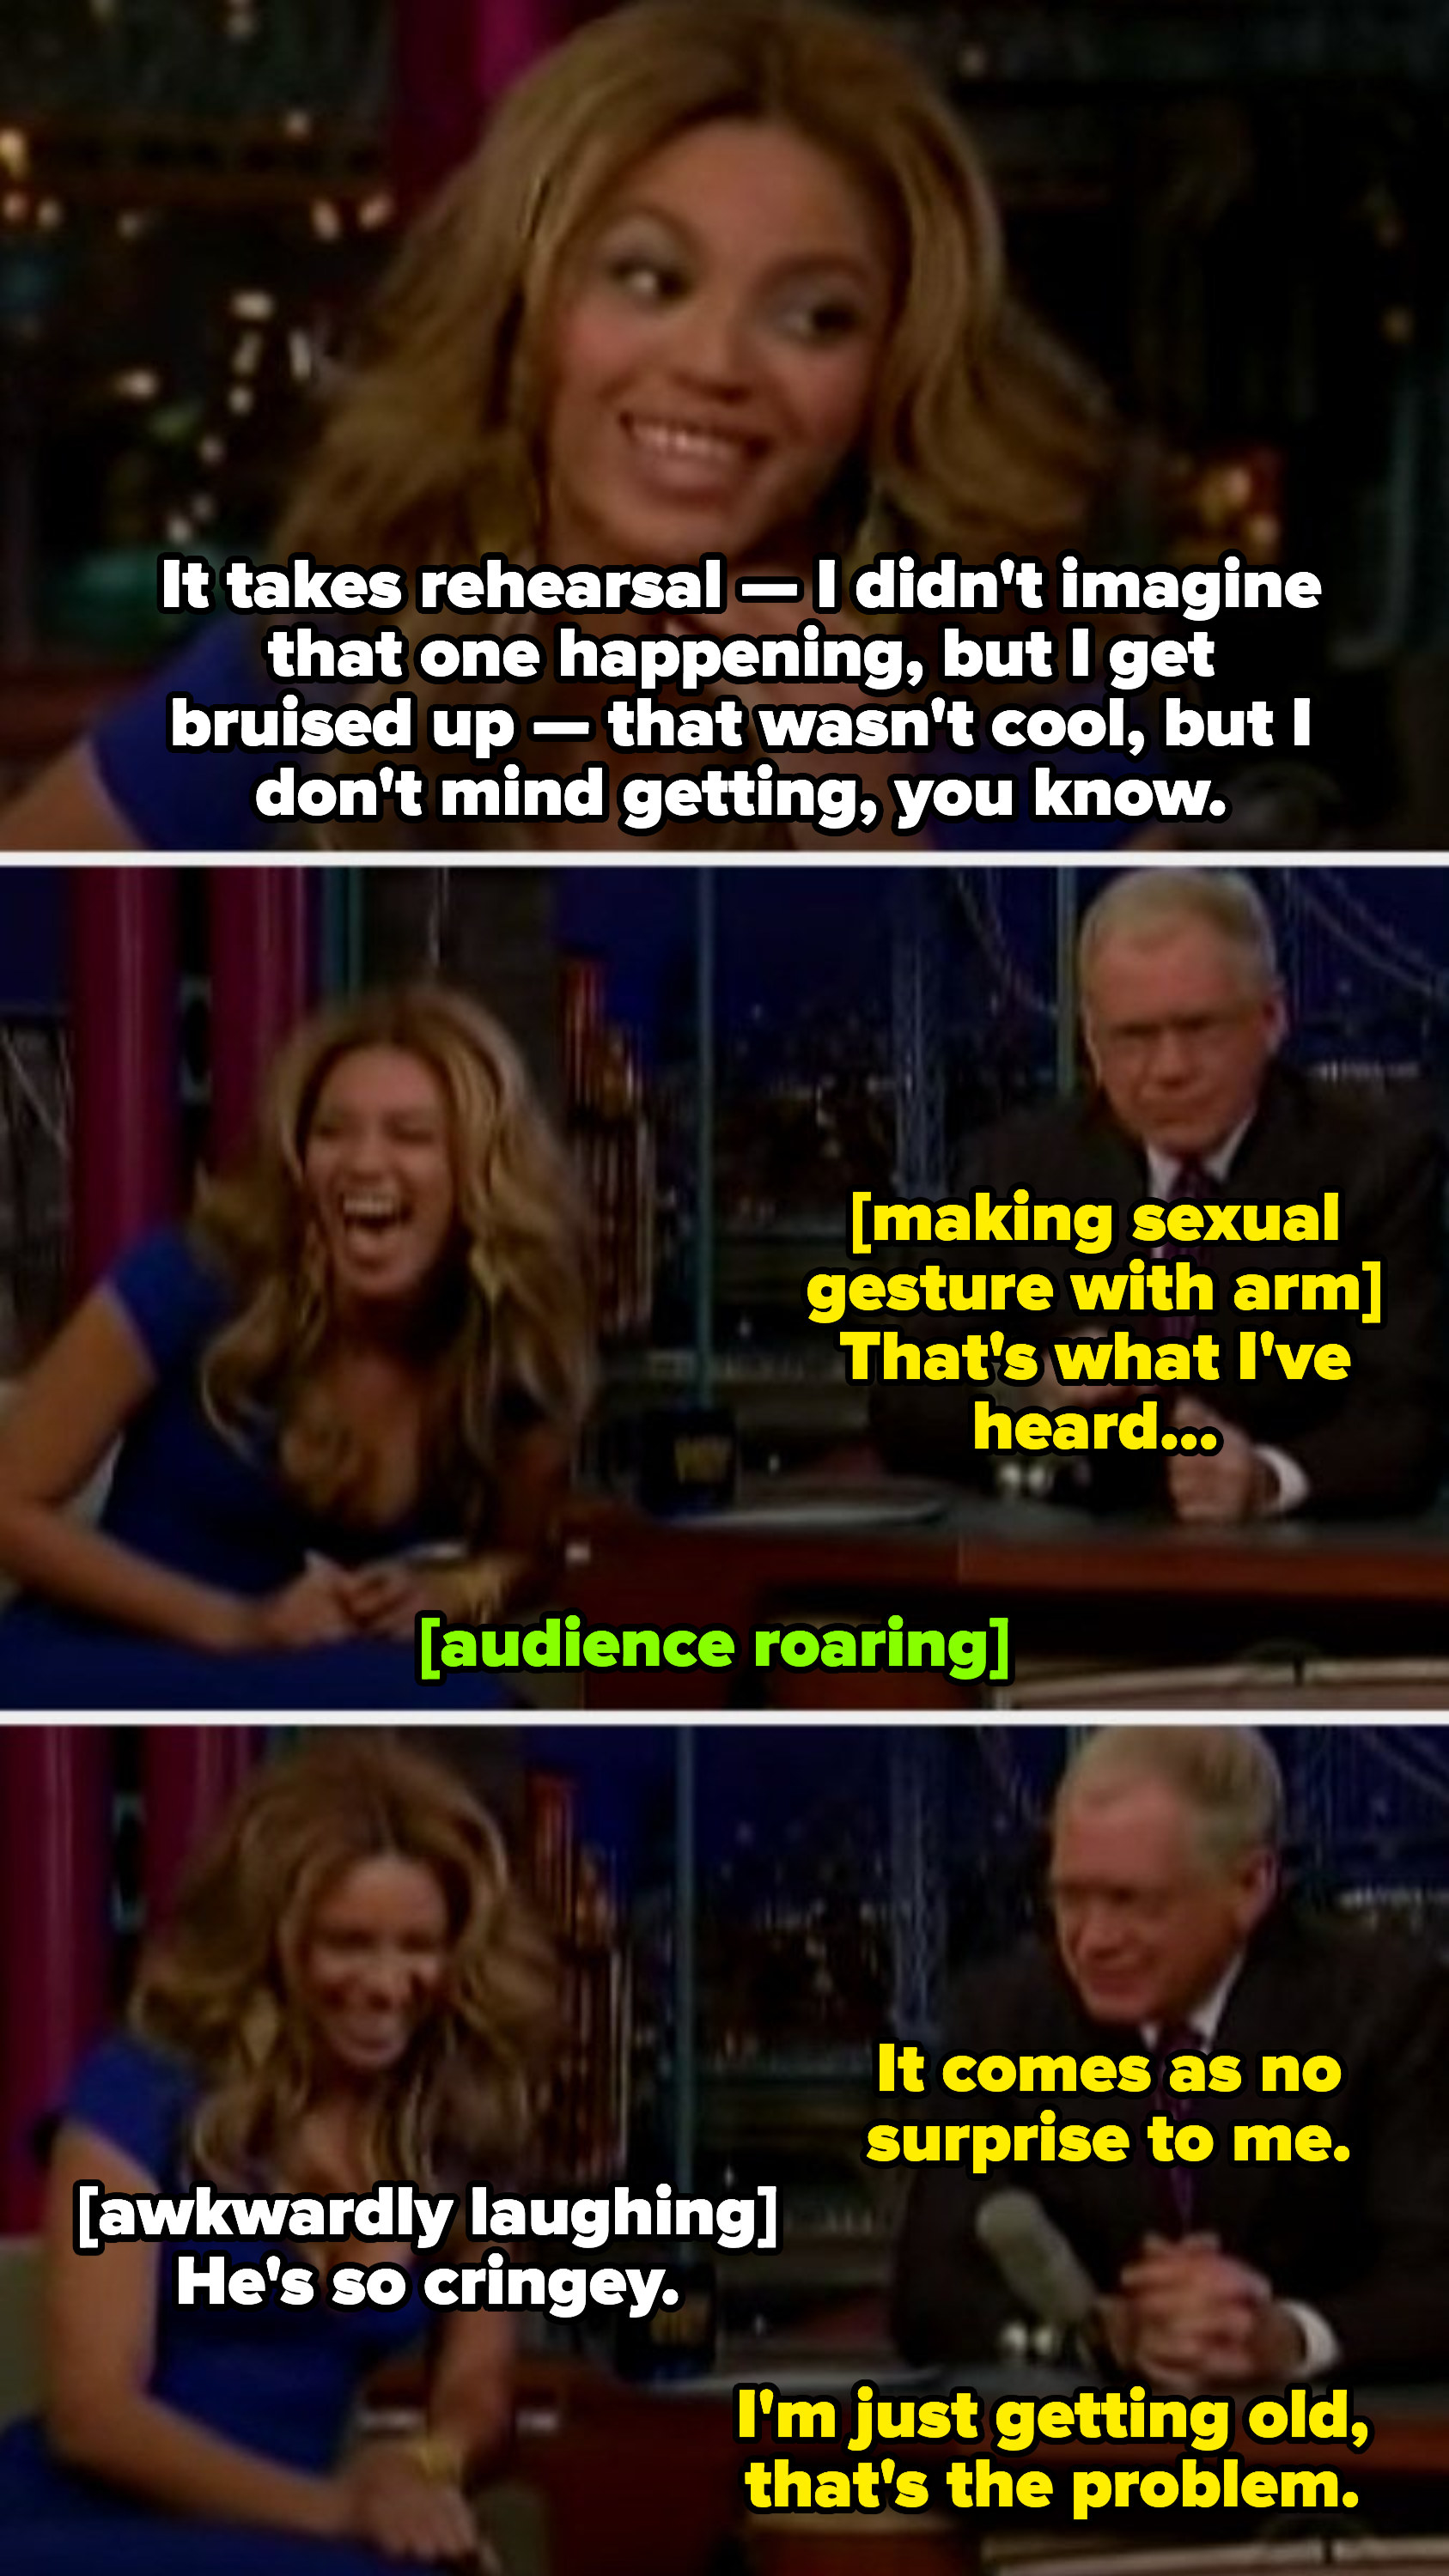 """Letterman telling Beyoncé """"It comes as no surprise to me,"""" making an inappropriate insinuation that she enjoys rough sex"""